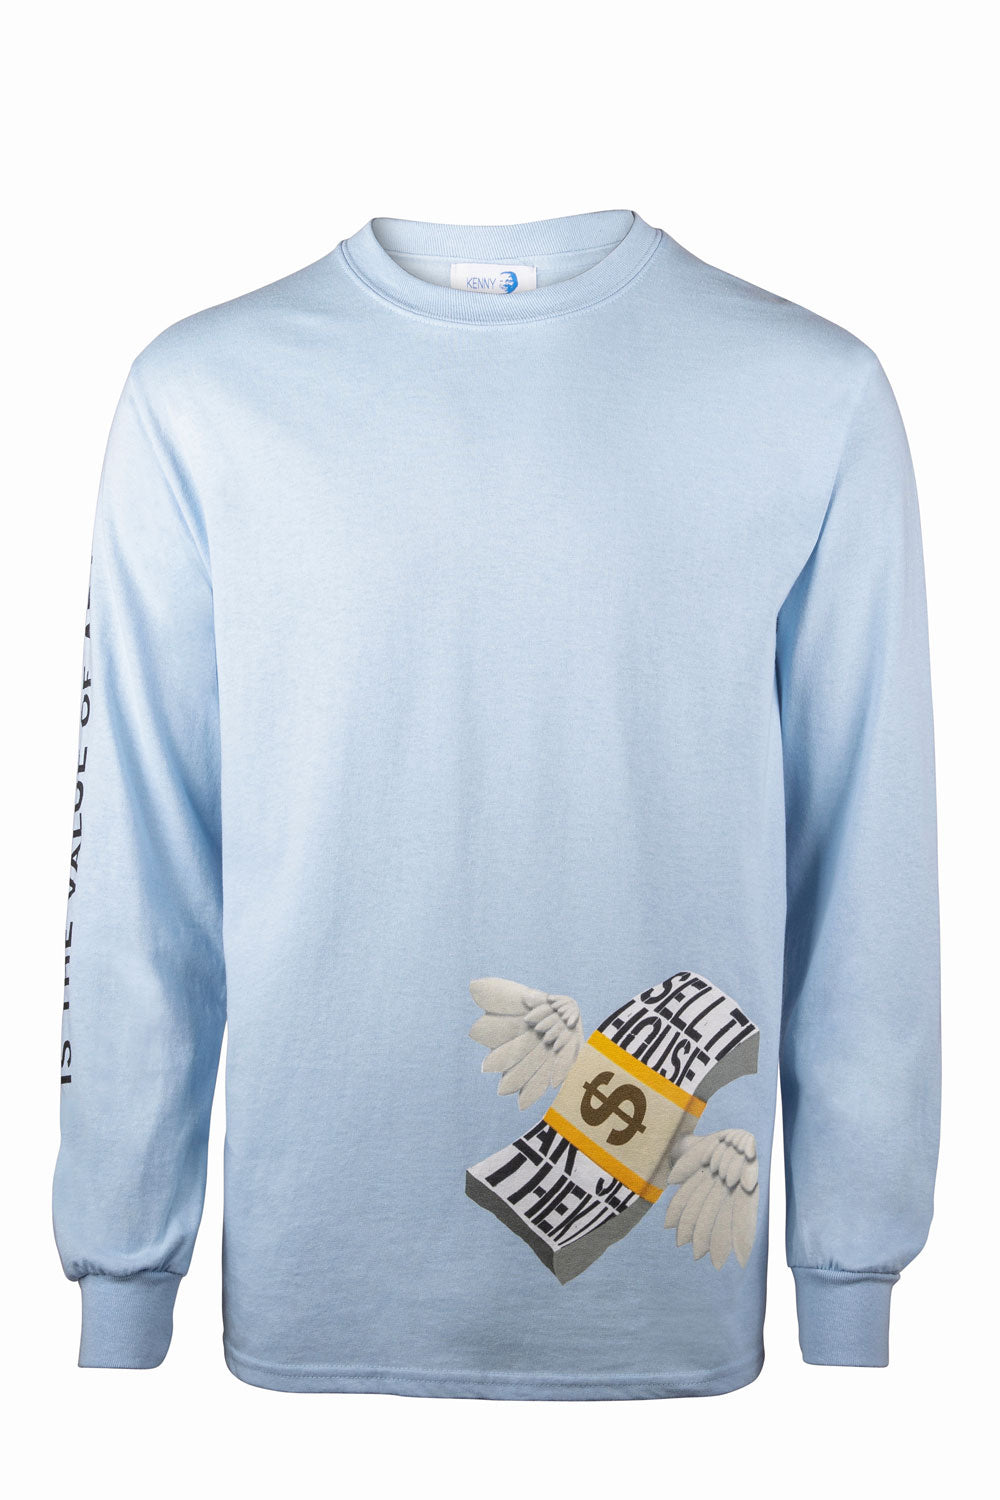 Kenny Schachter 'Money Emoji' Sweatshirt